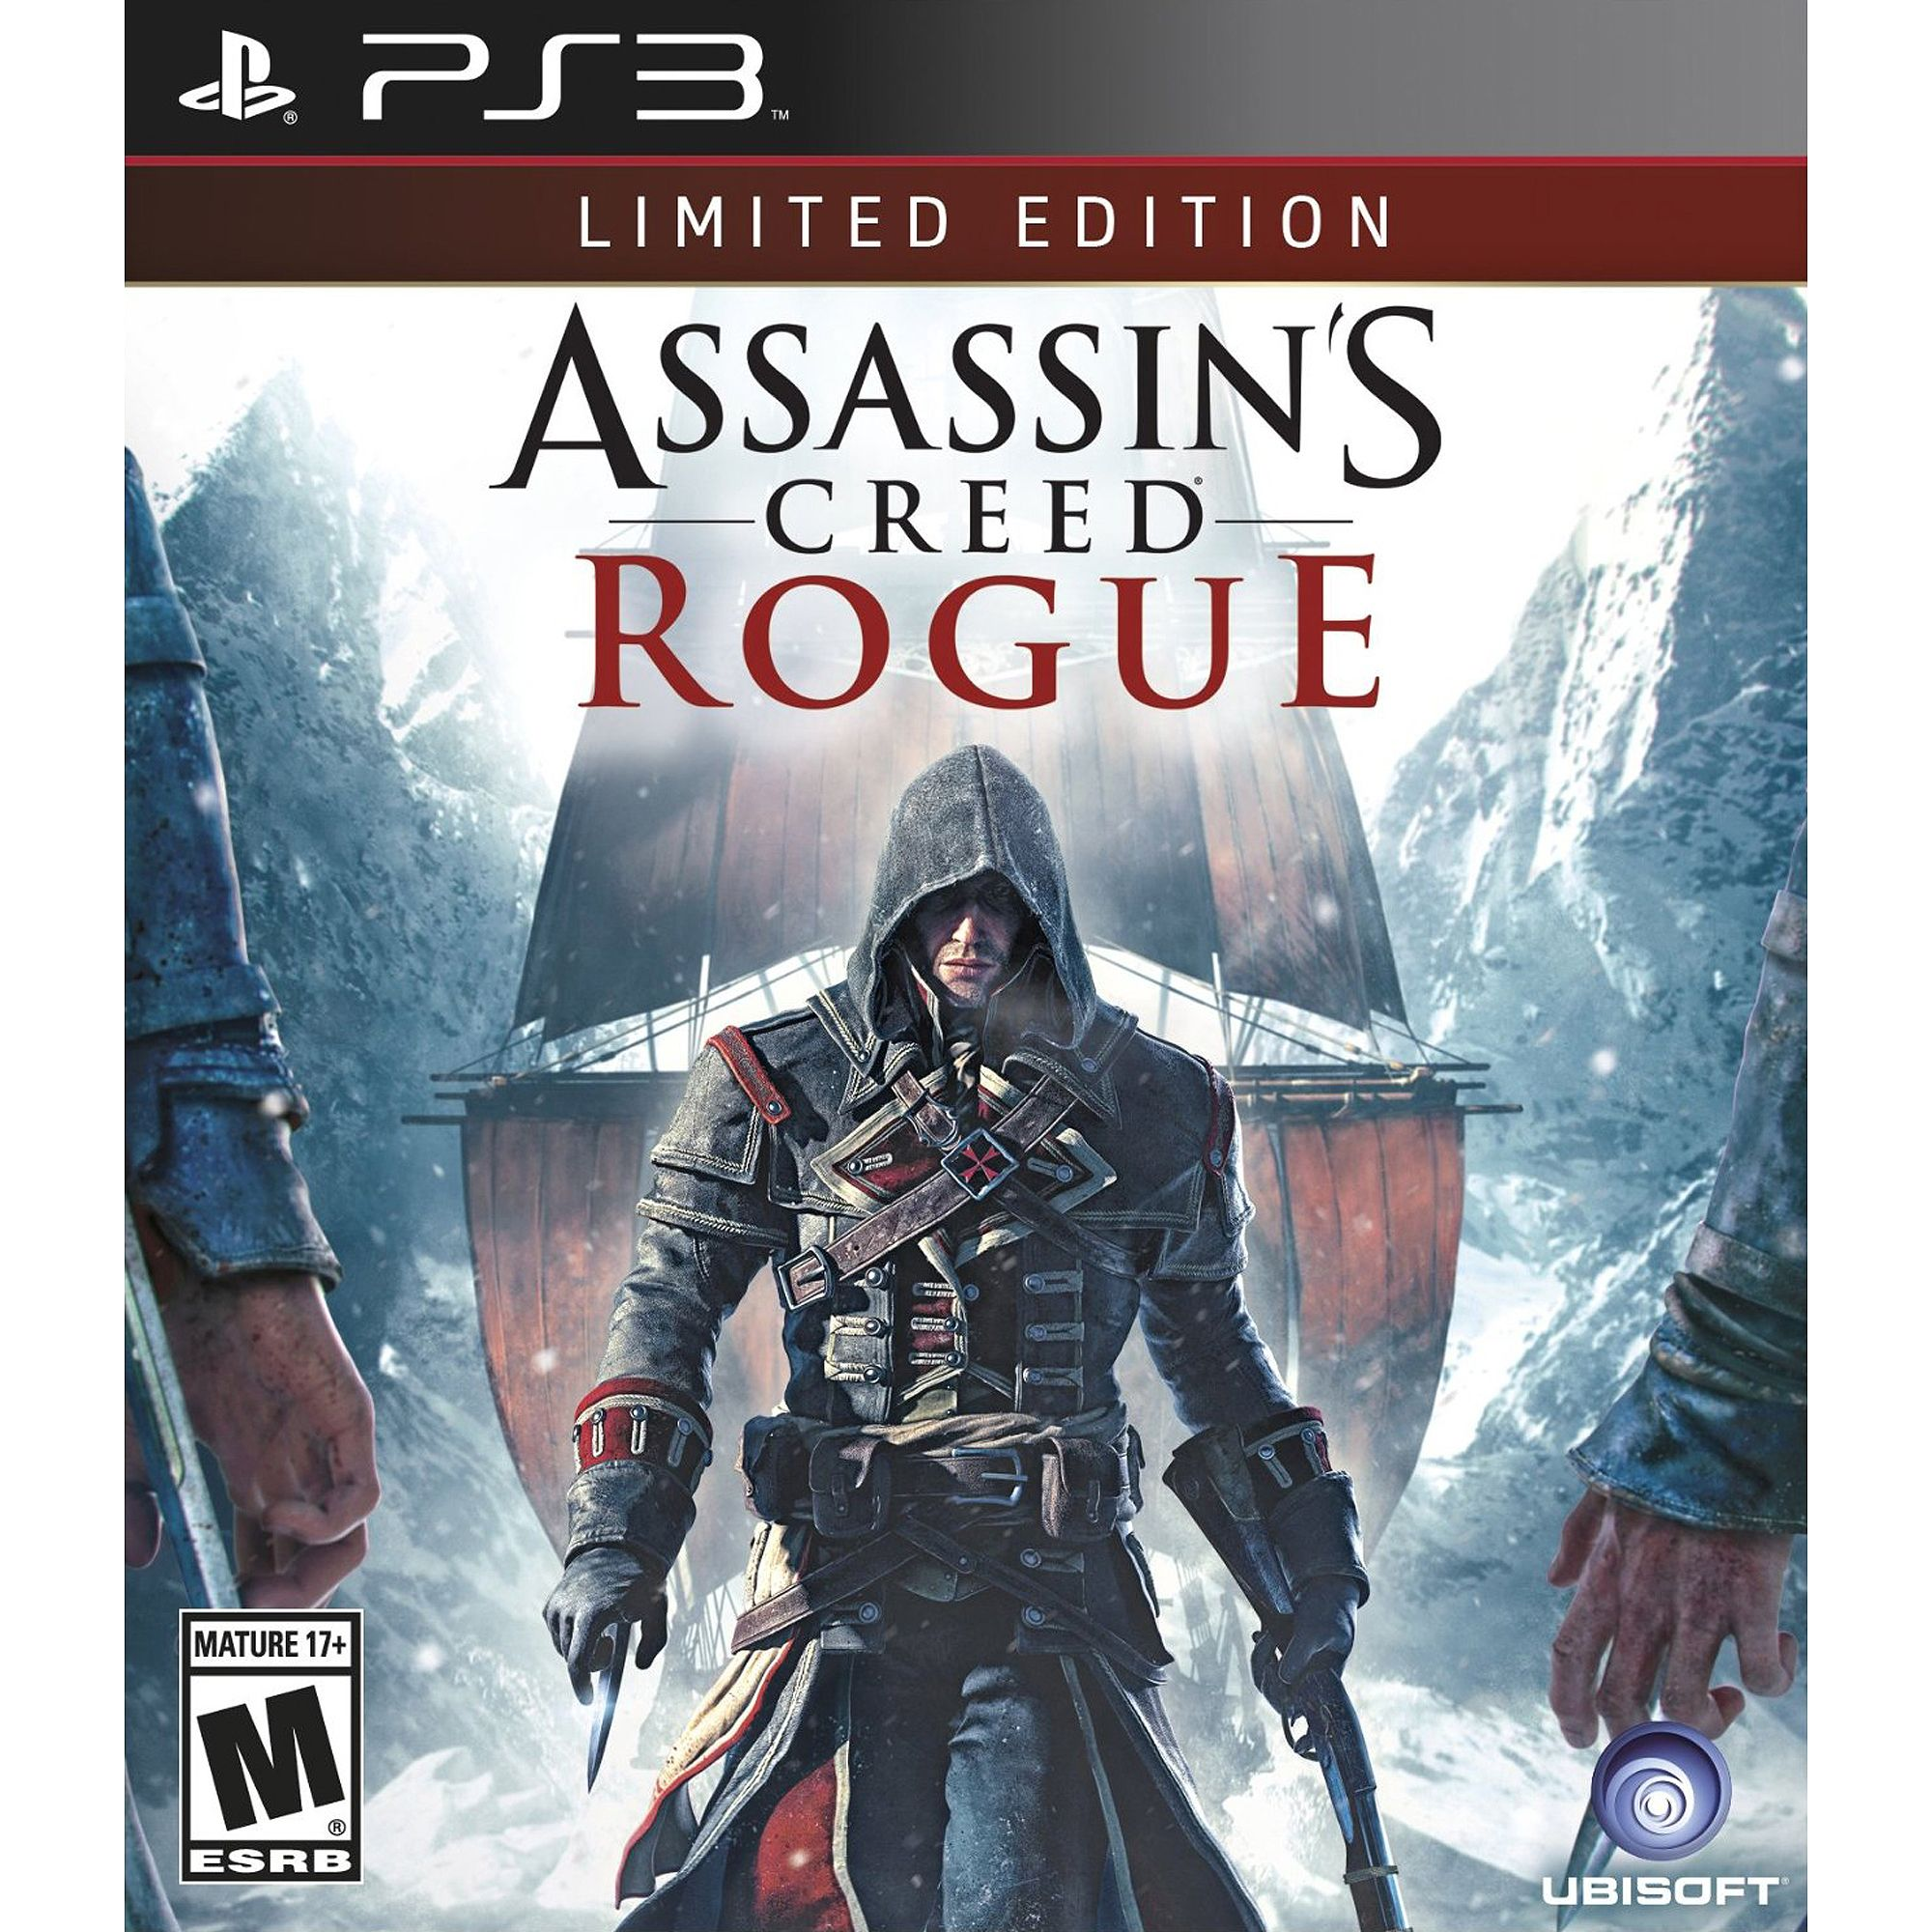 Video Games Assassin's creed, Assassins creed